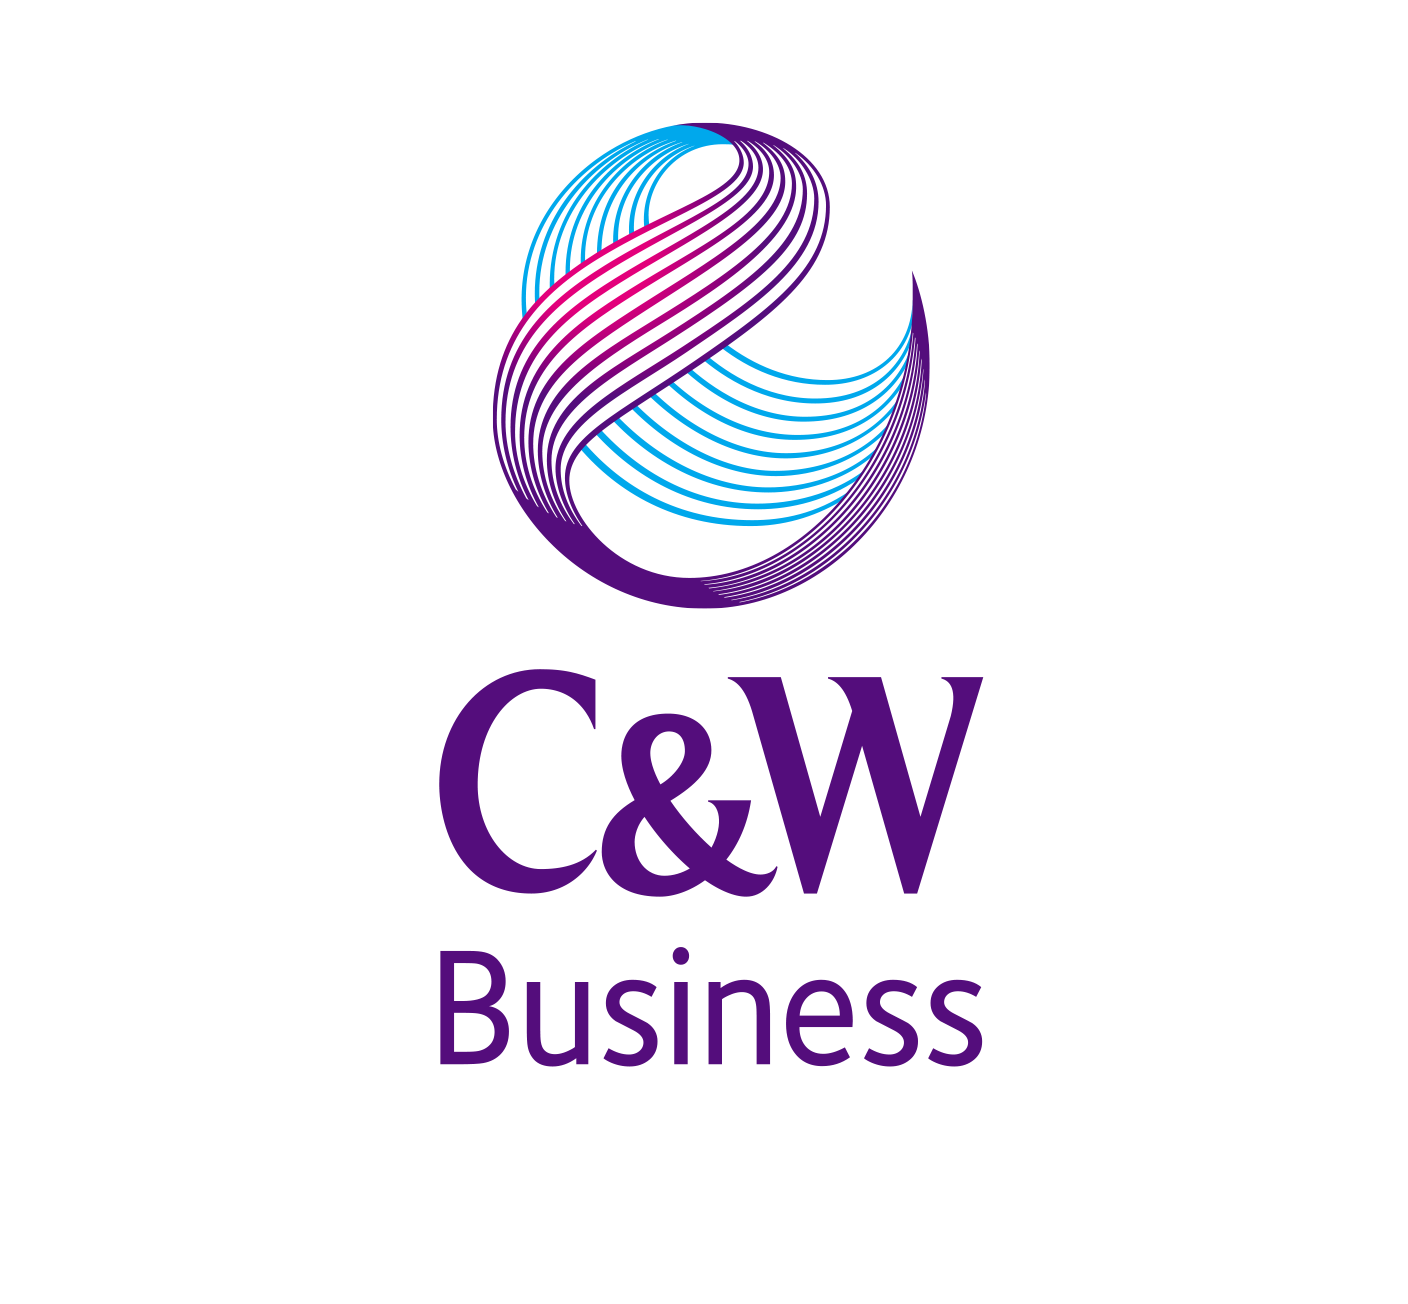 c&w-business